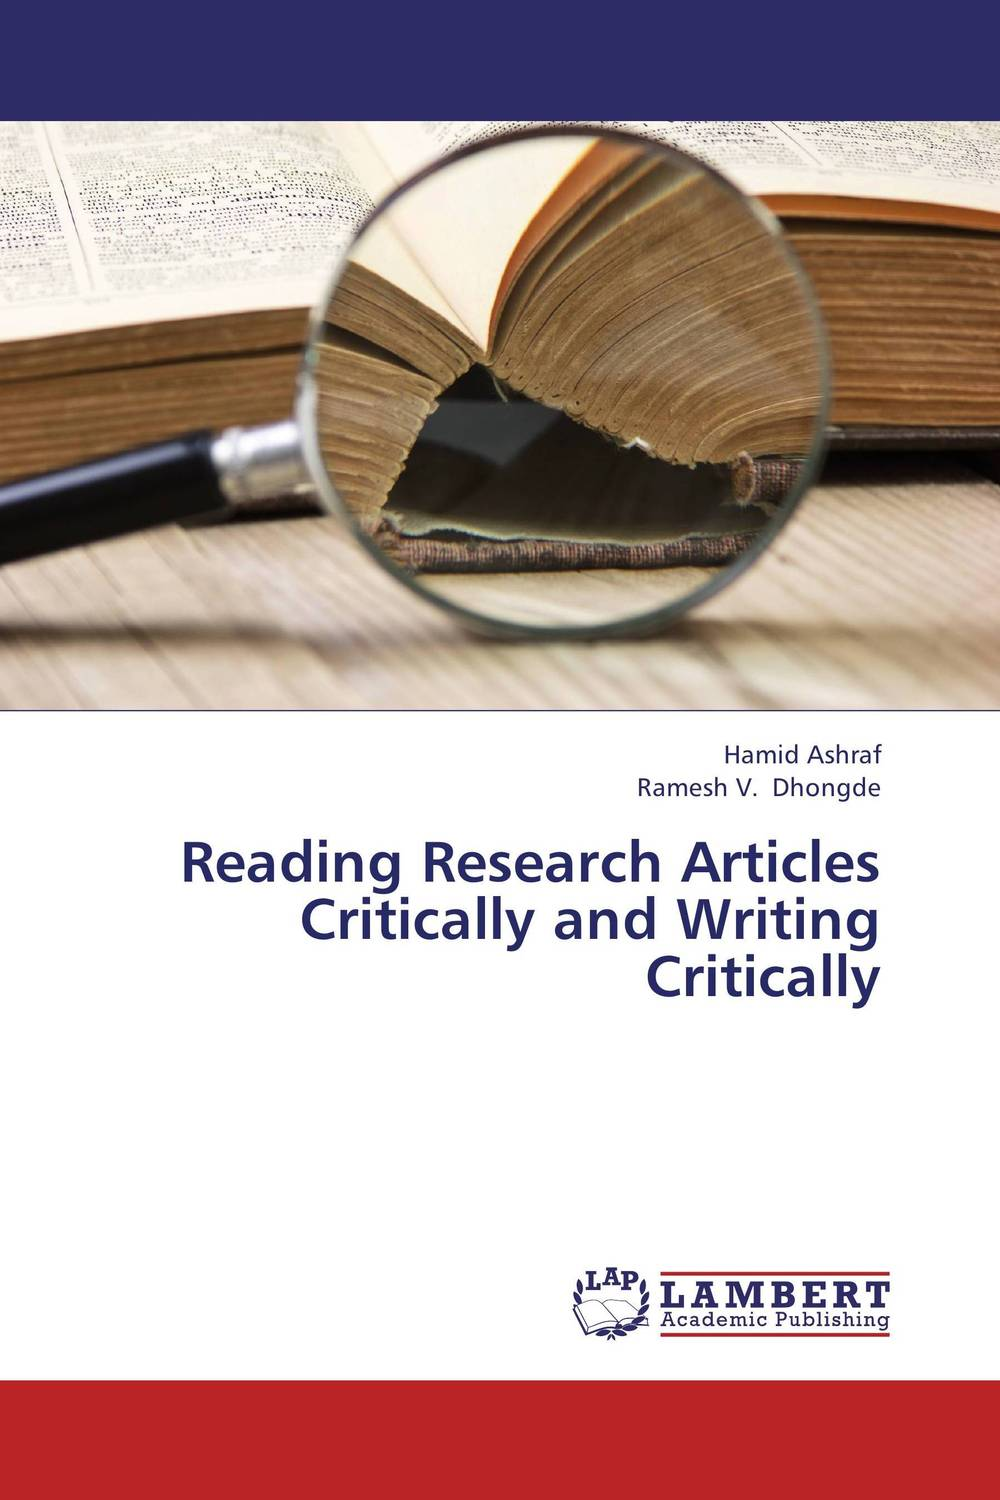 Reading Research Articles Critically and Writing Critically